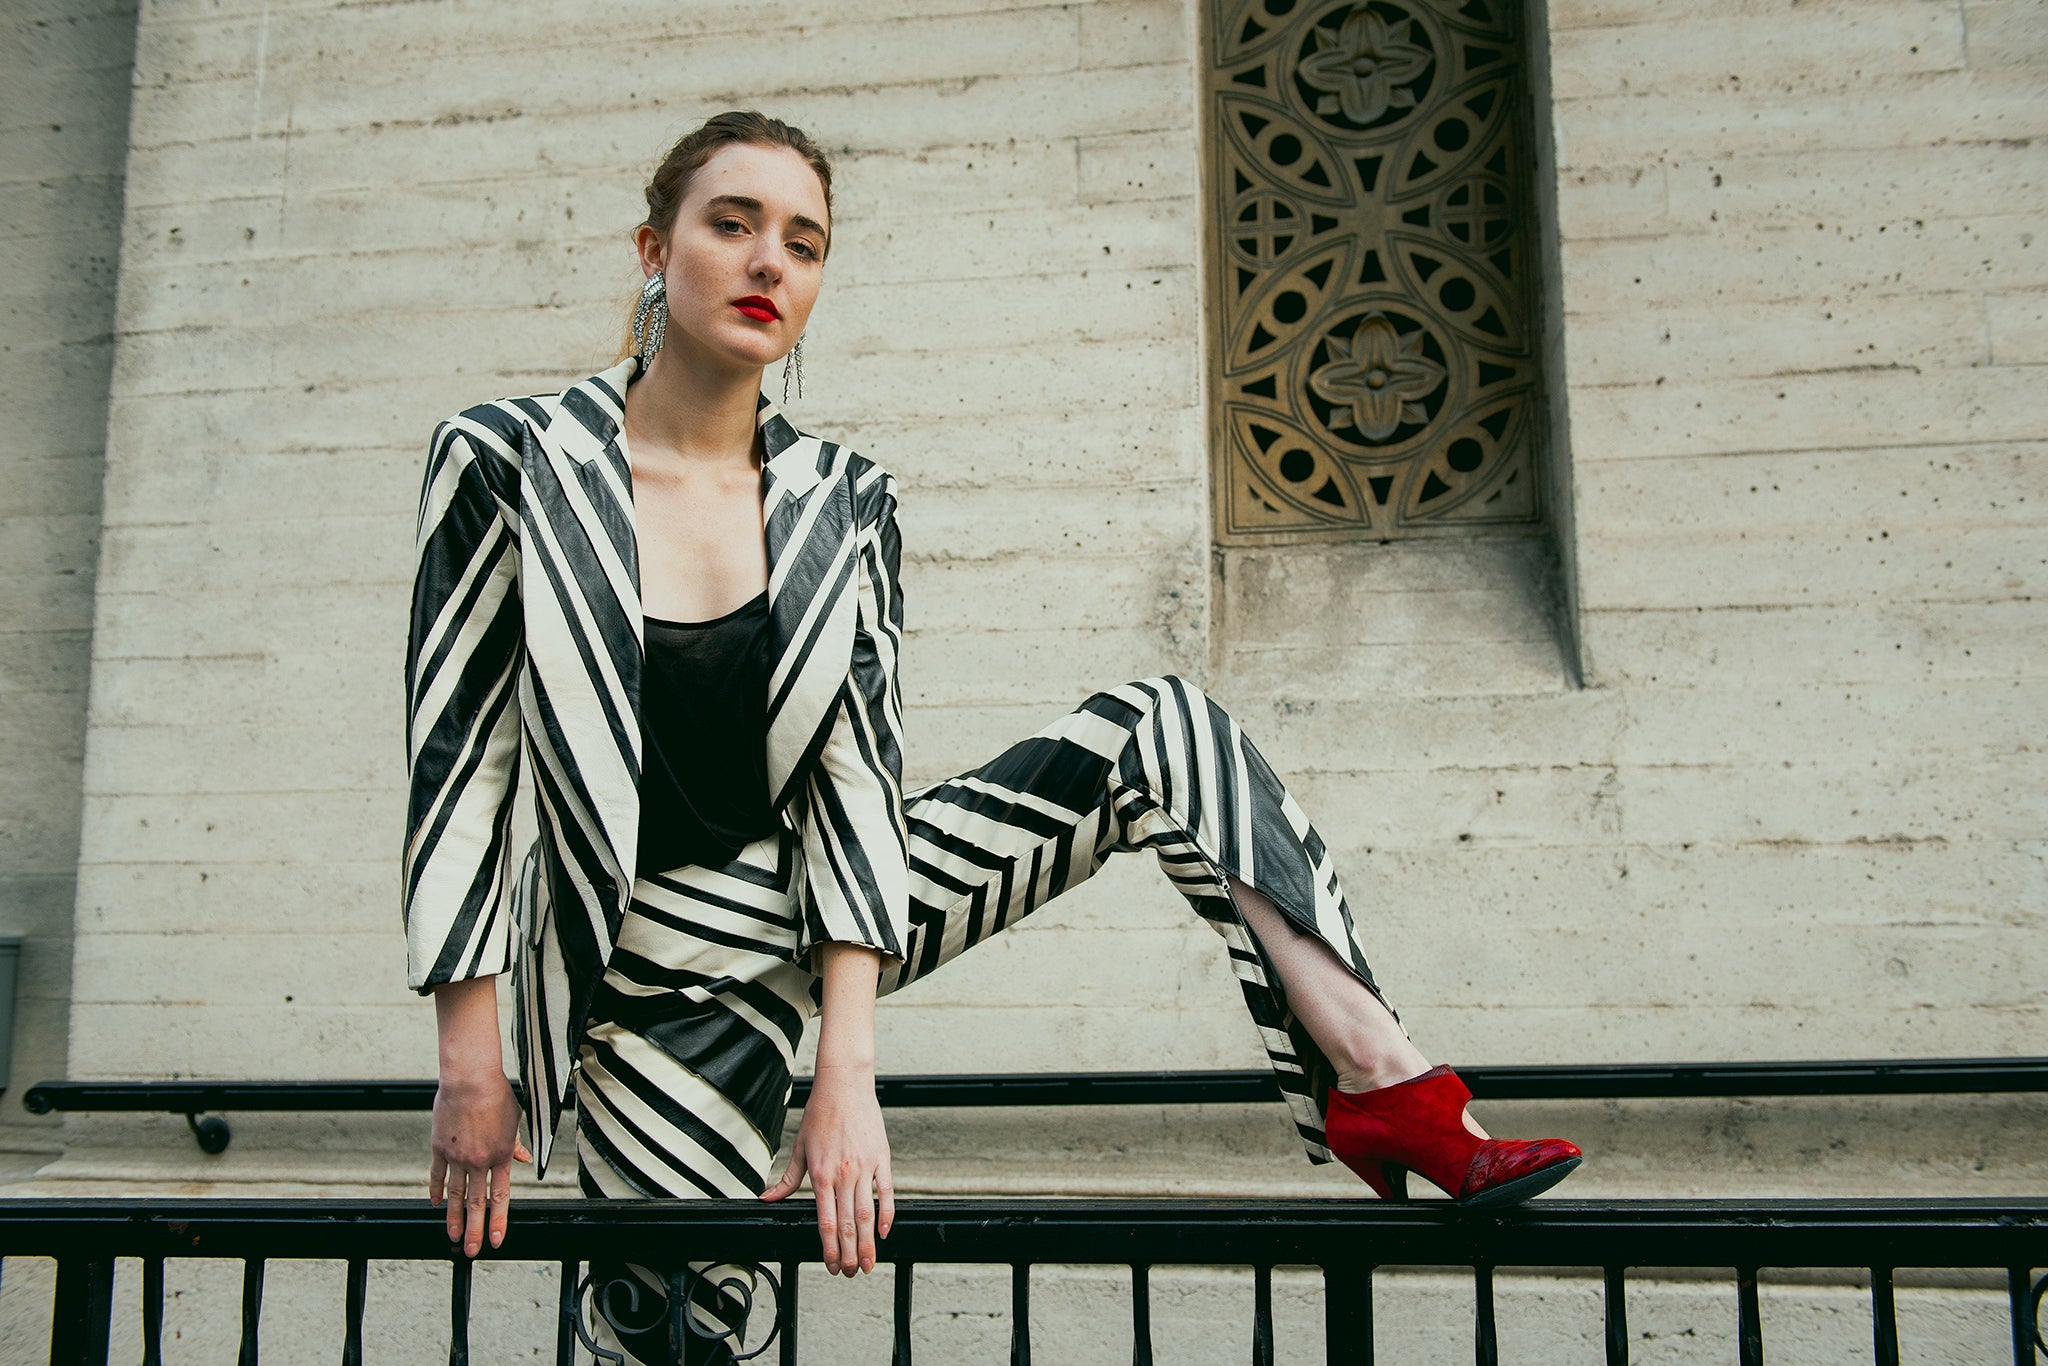 Recess Vintage Girl in Zebra striped Gianfranco Ferre Leather Suit climbing fence